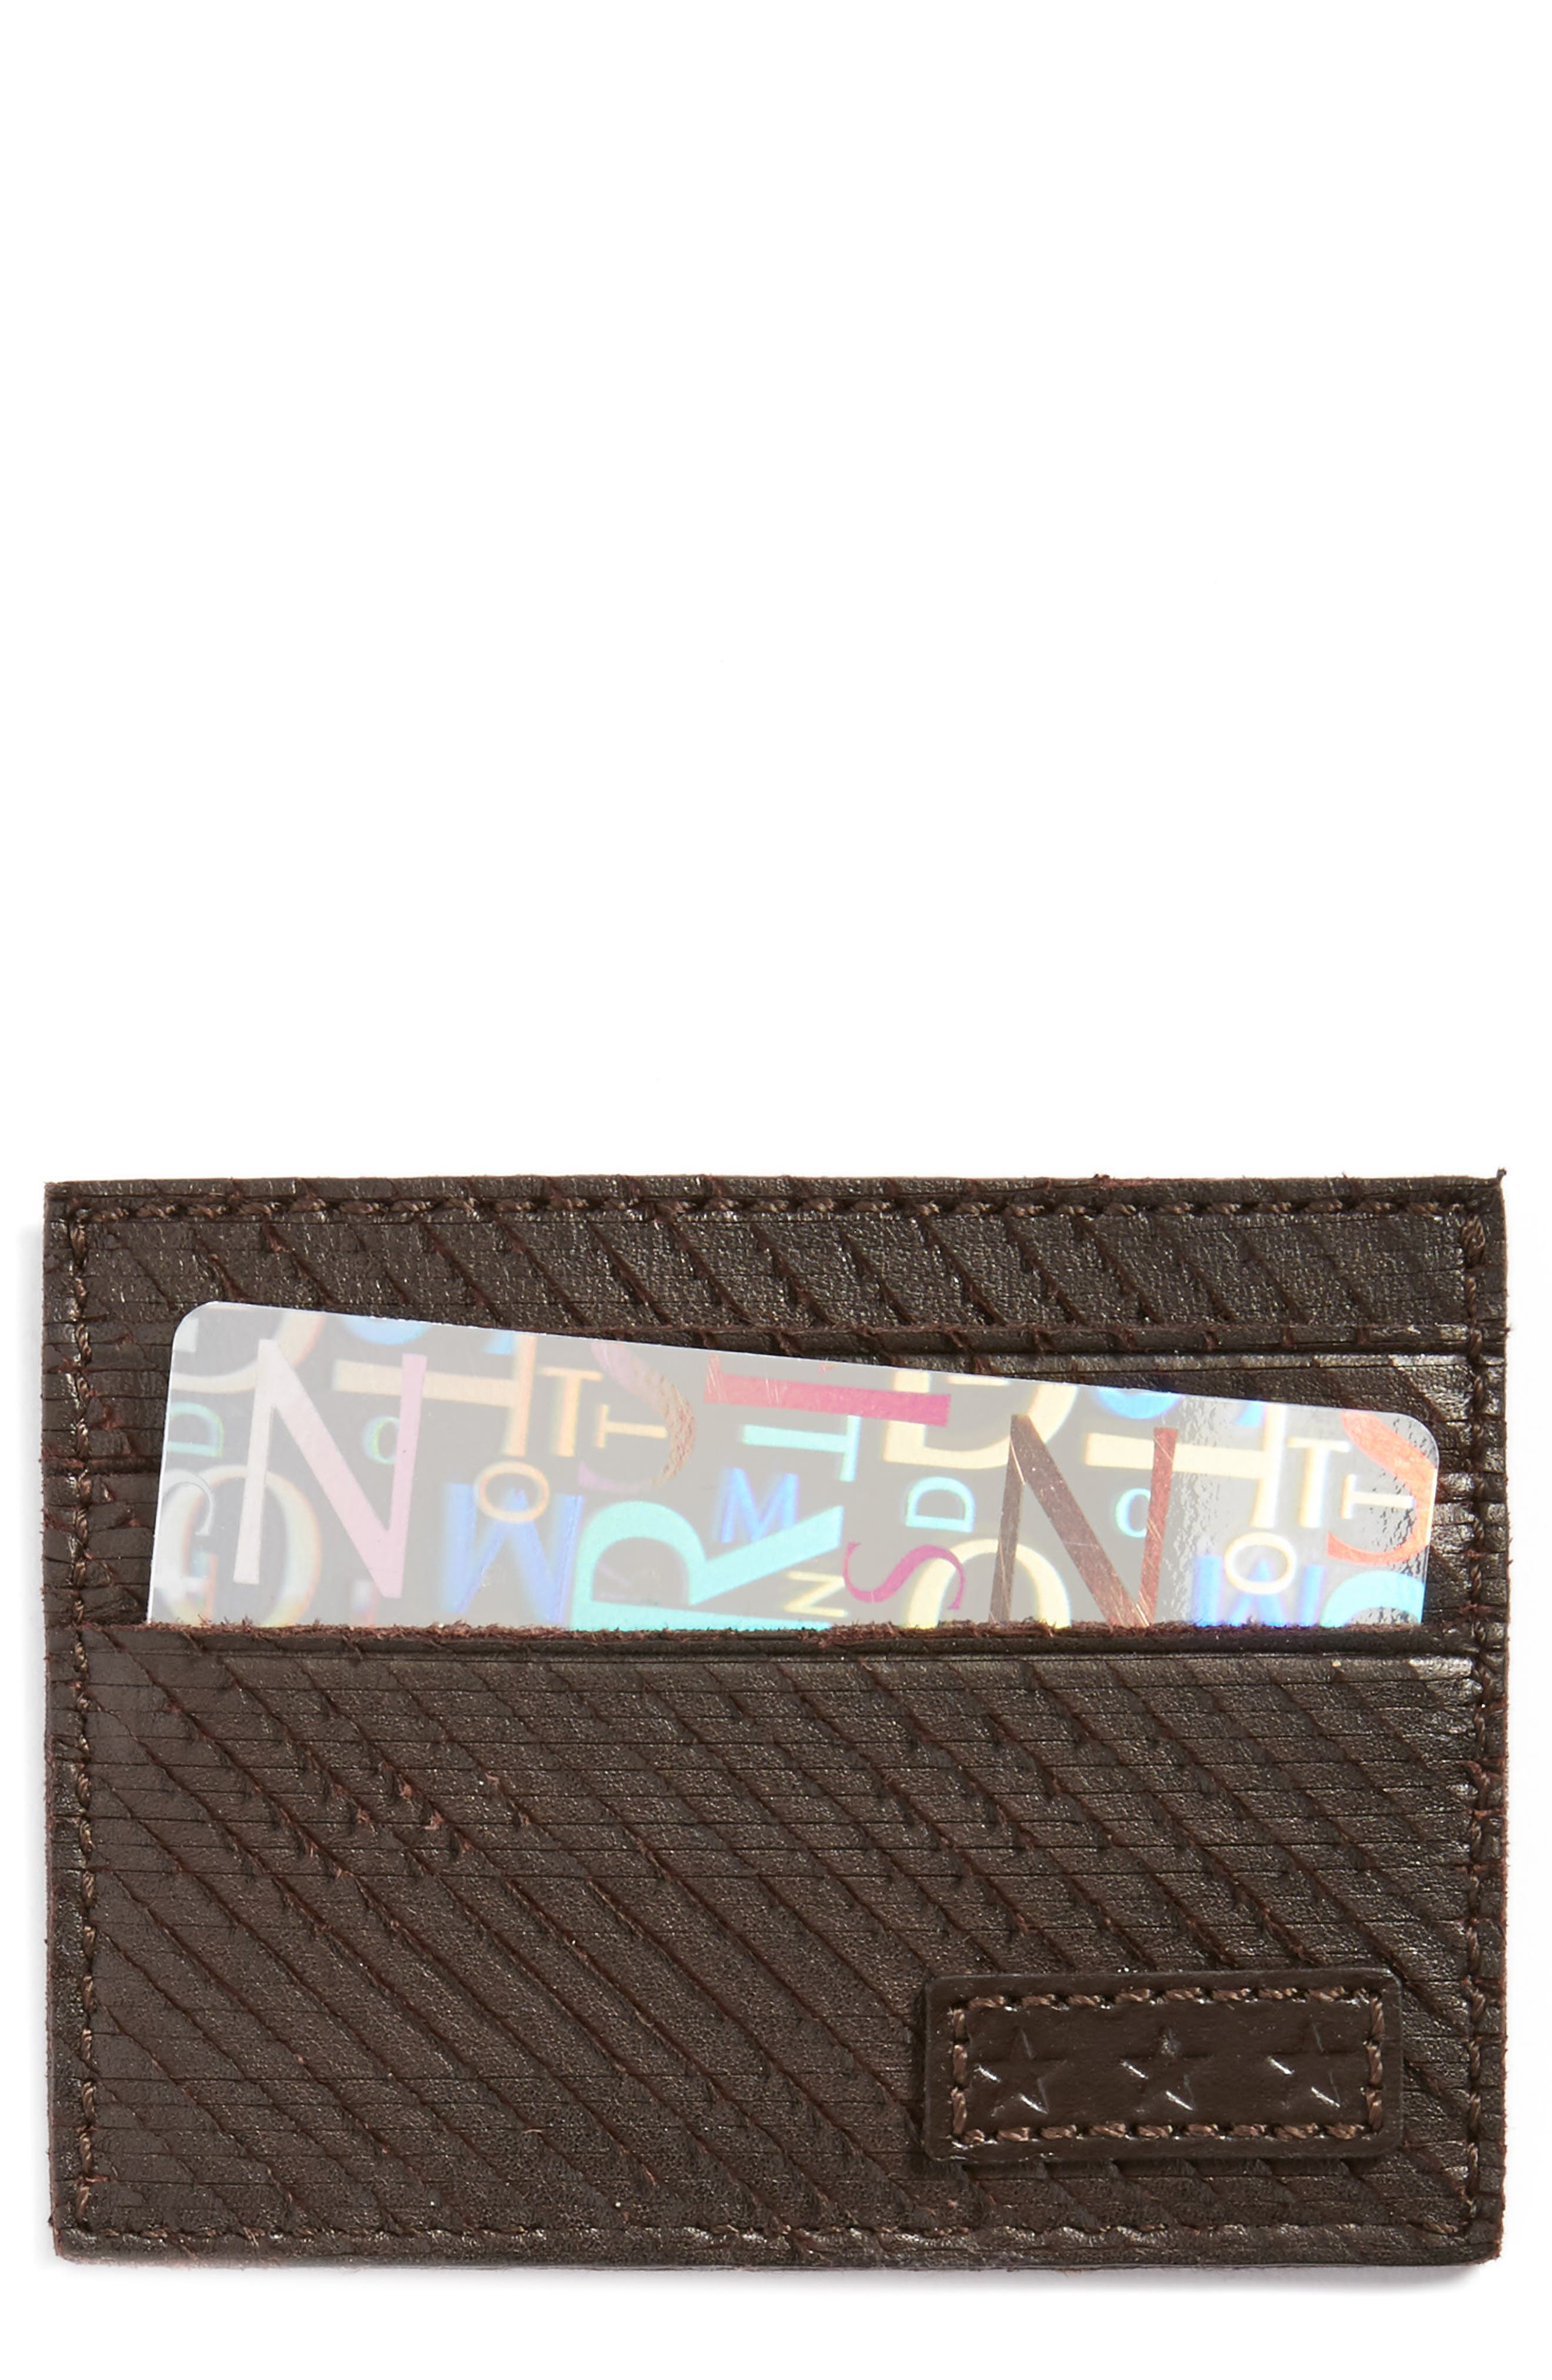 Leather Card Case,                             Main thumbnail 1, color,                             Chocolate